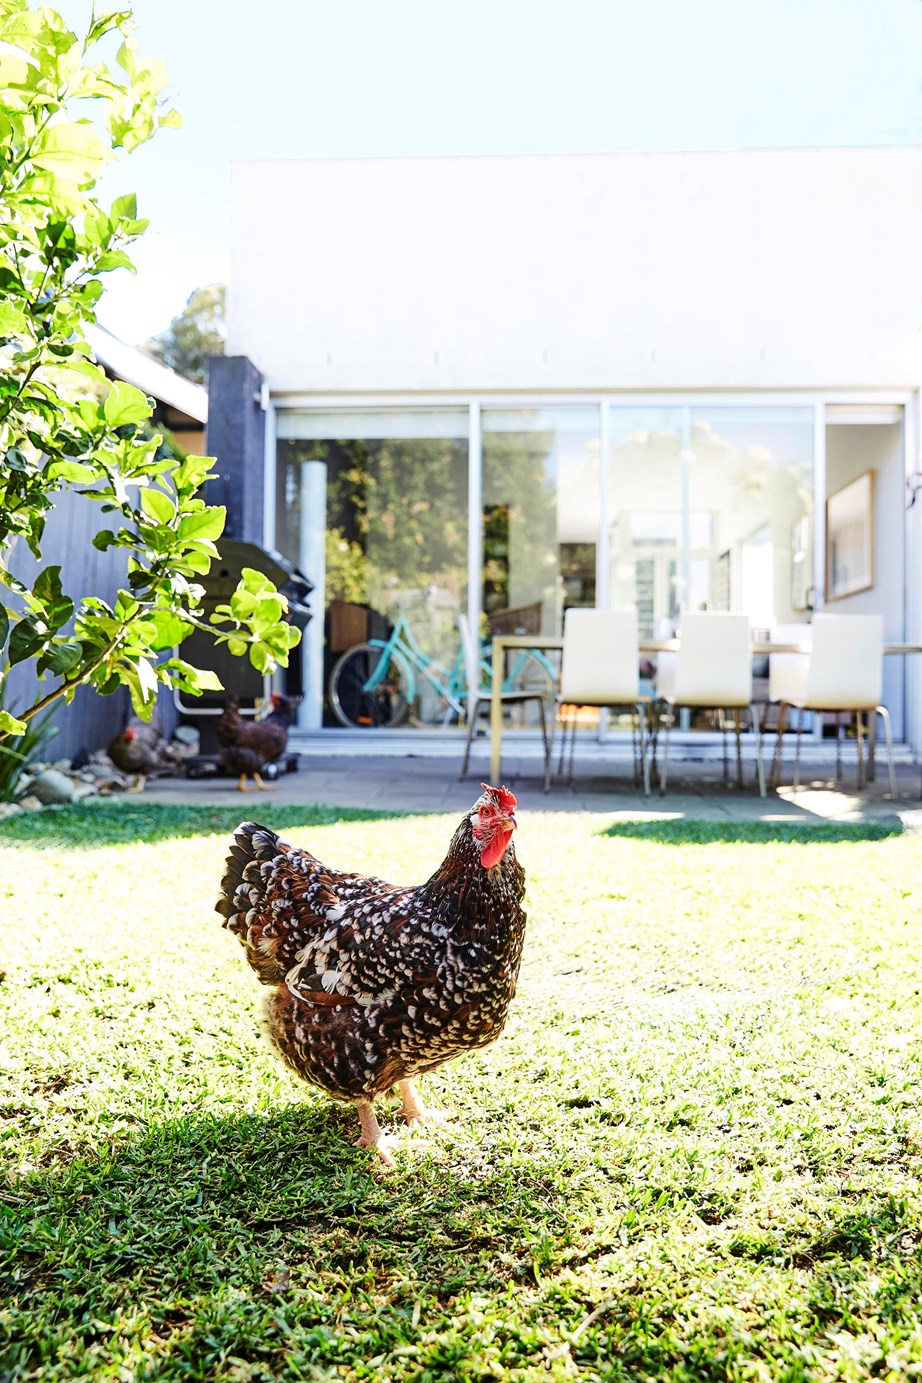 As well as providing you with fresh eggs everyday, chickens also improve the health of your soil.